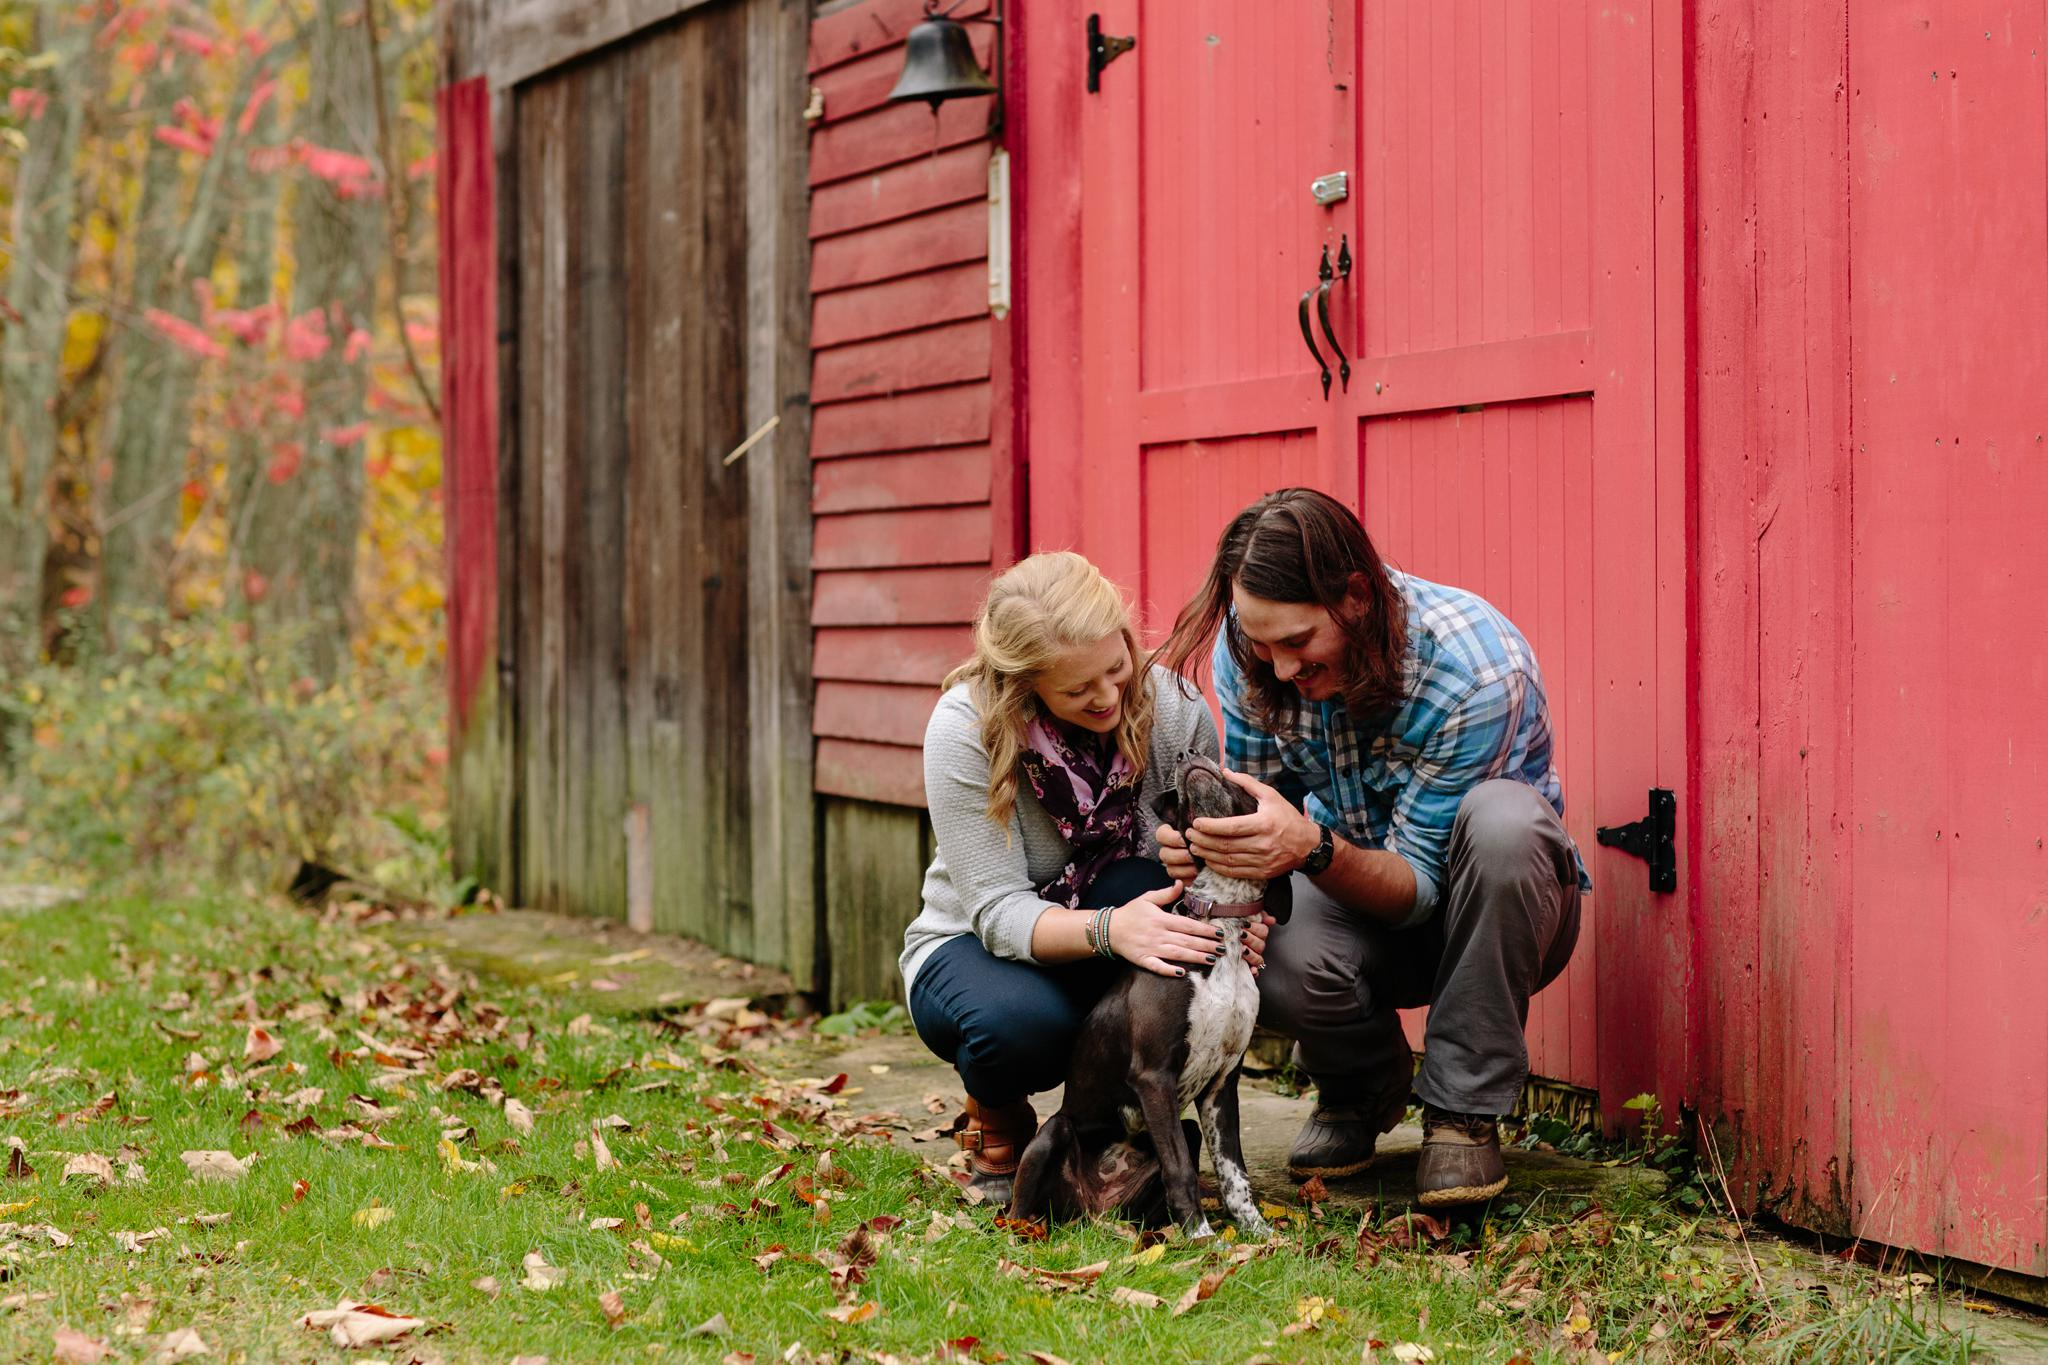 tukhannock_pa_engagement_photographer_7975.jpg